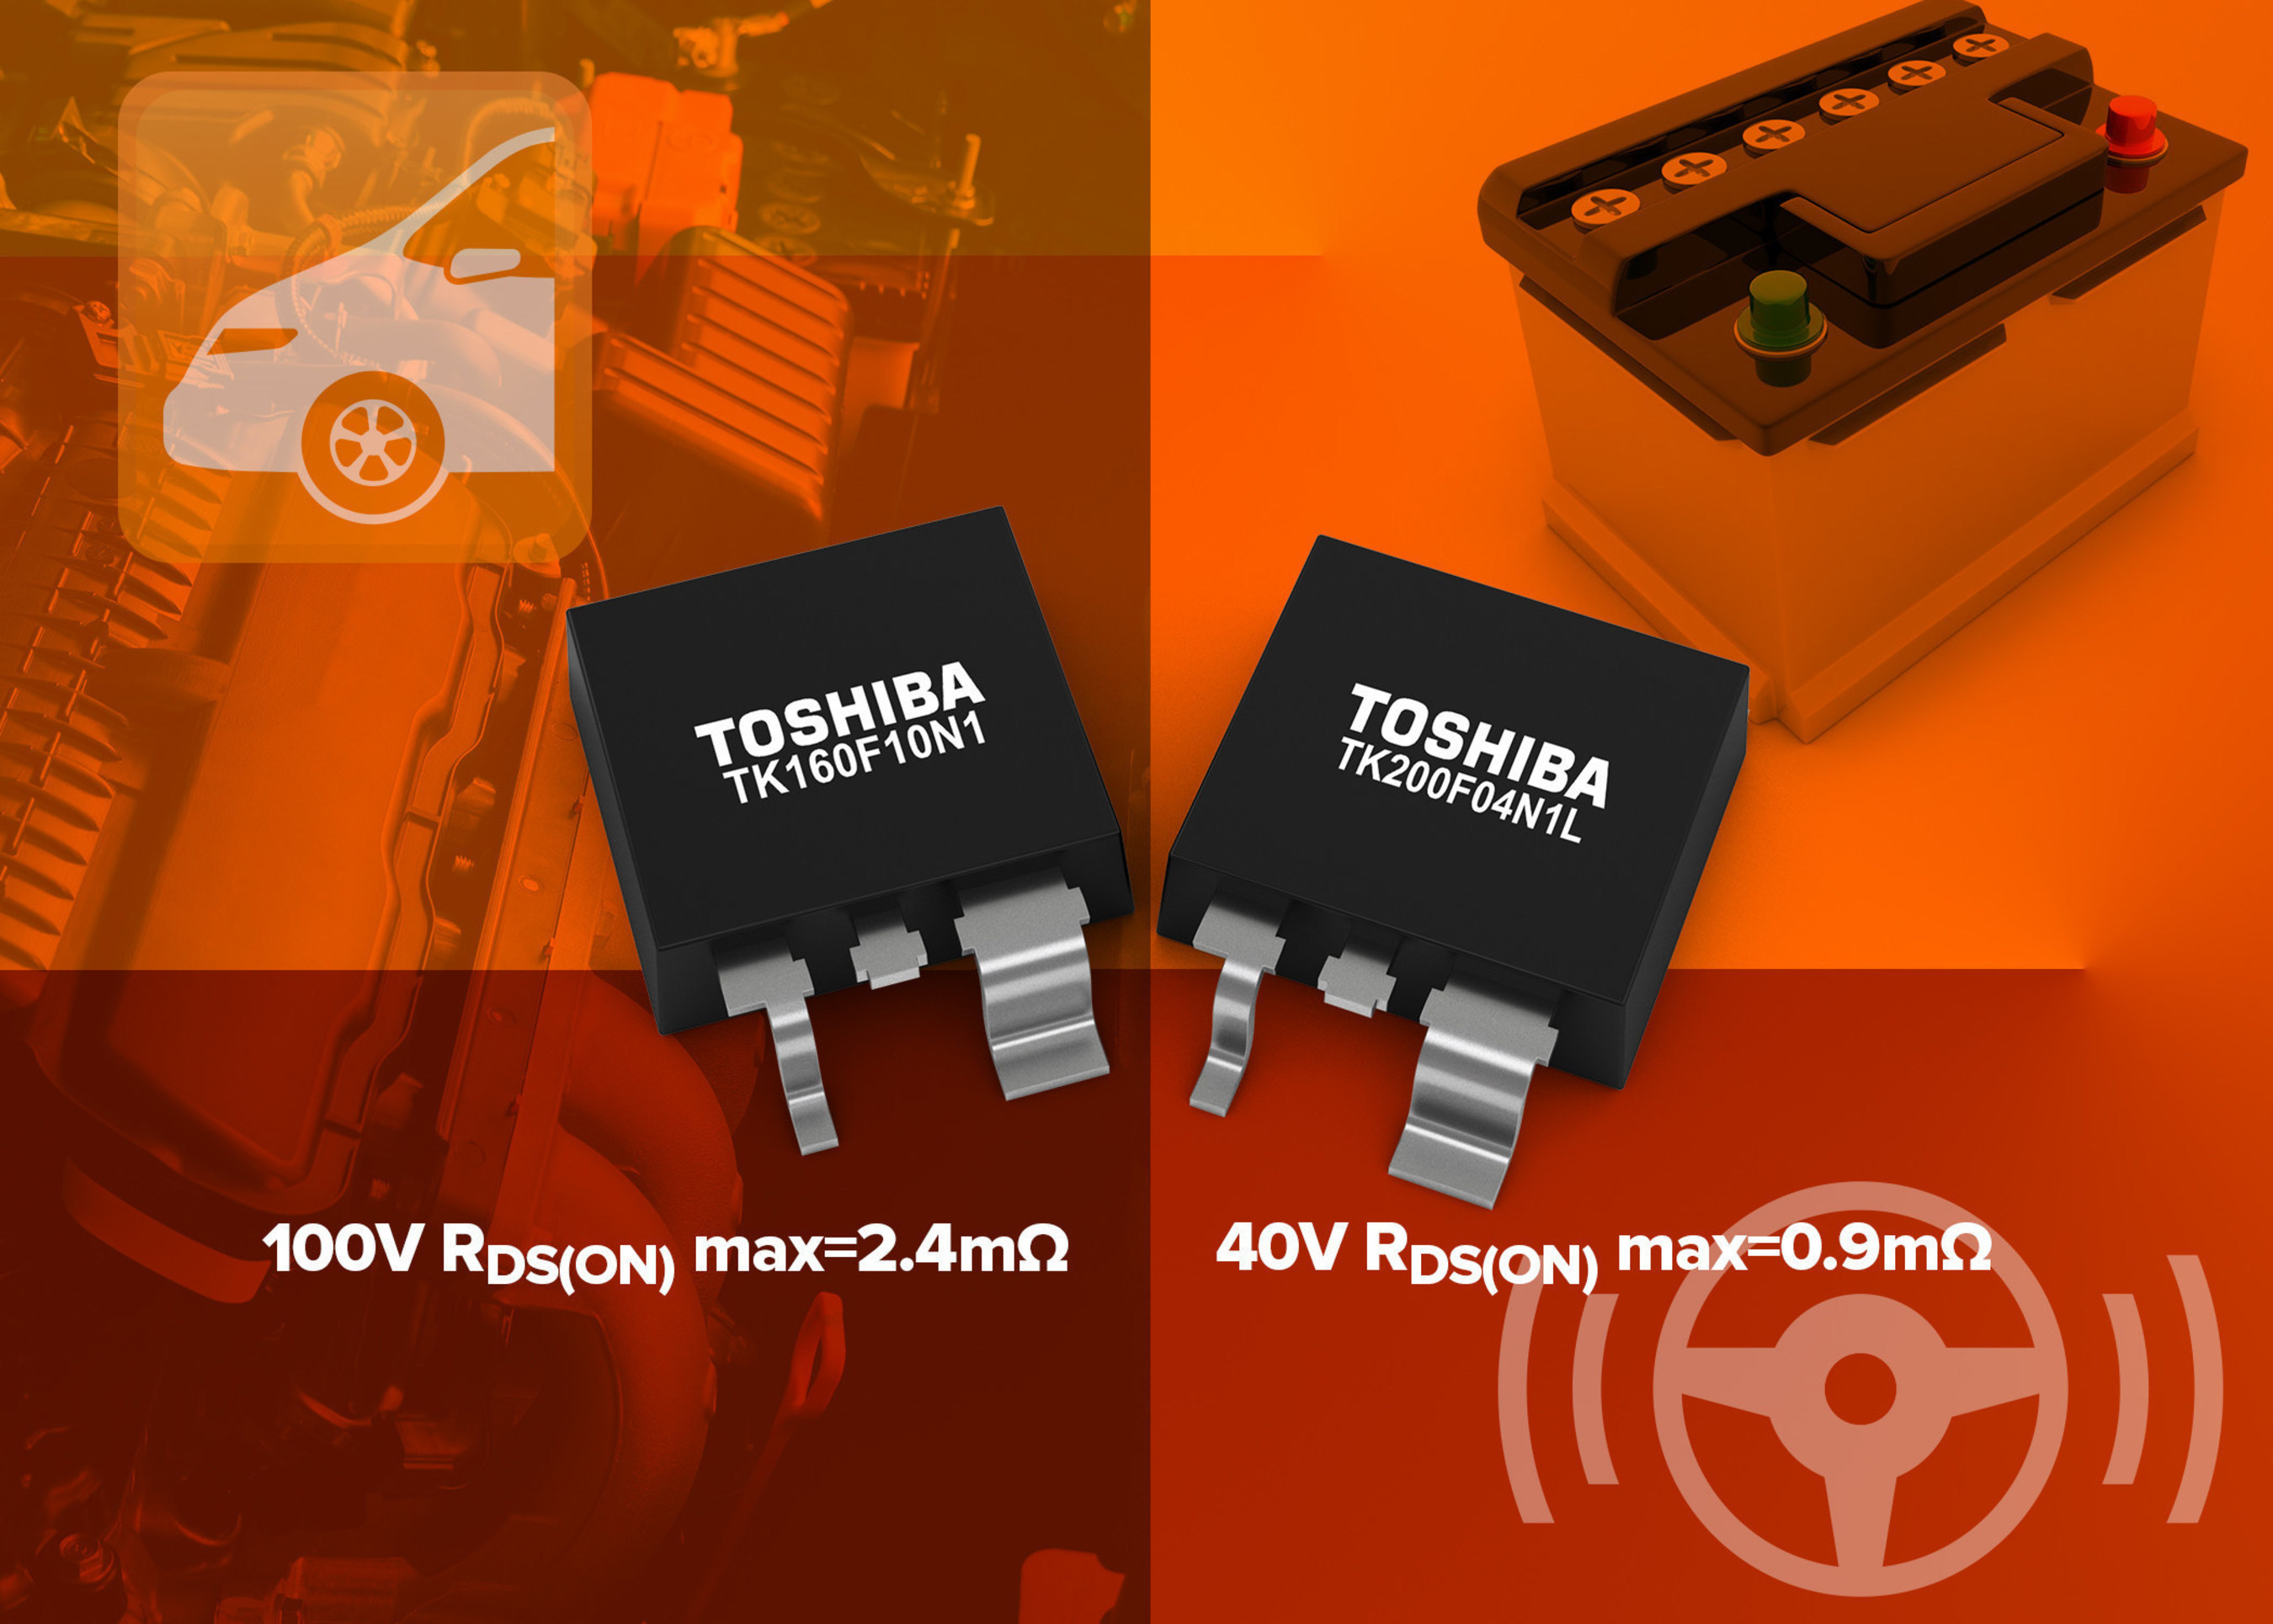 Toshiba Expands Range of Automotive N-ch MOSFETs